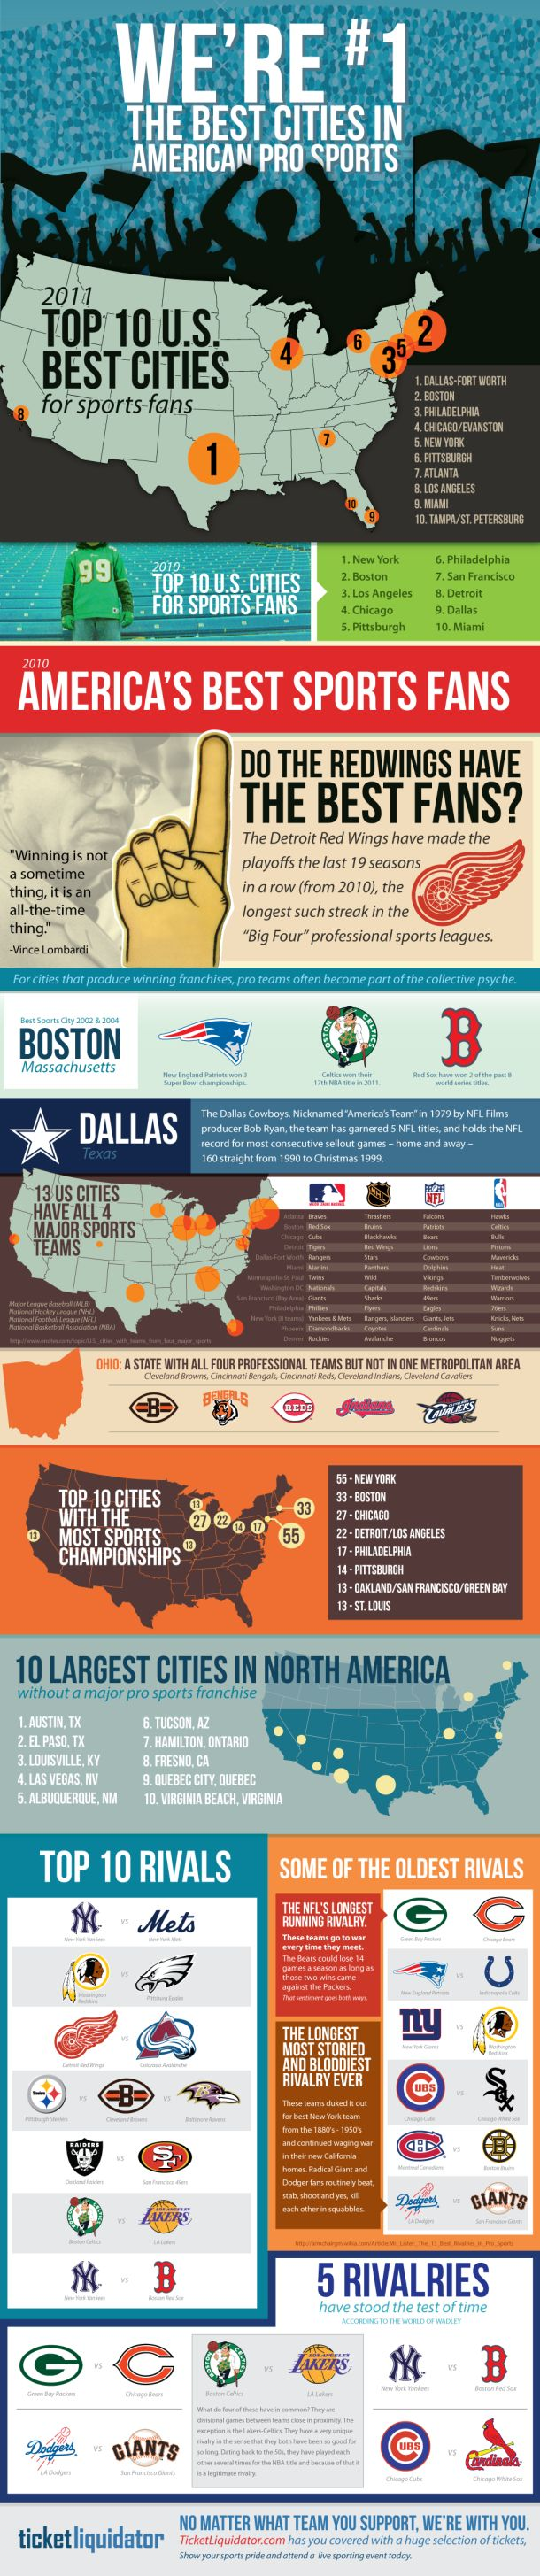 Is 2014 08 sports wagering guidelines that you cana t afford to overlook - Best Cities In American Professional Sports Infographic